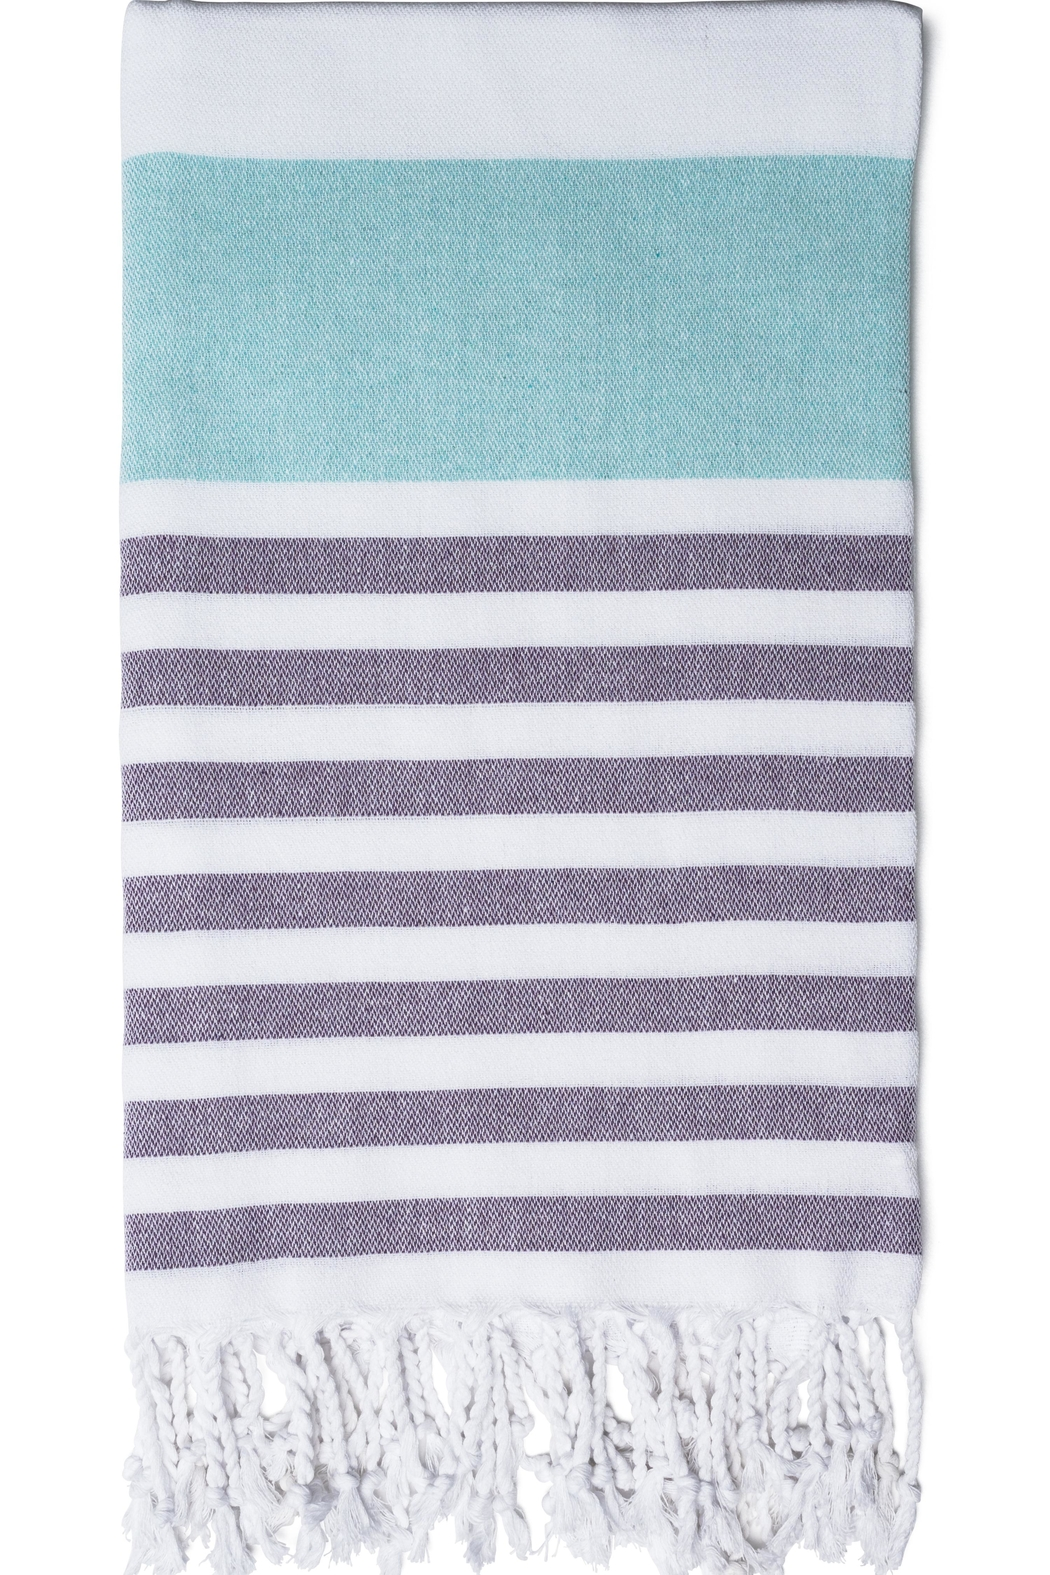 Olive & Loom Marine Beach Towel - Front Cropped Image